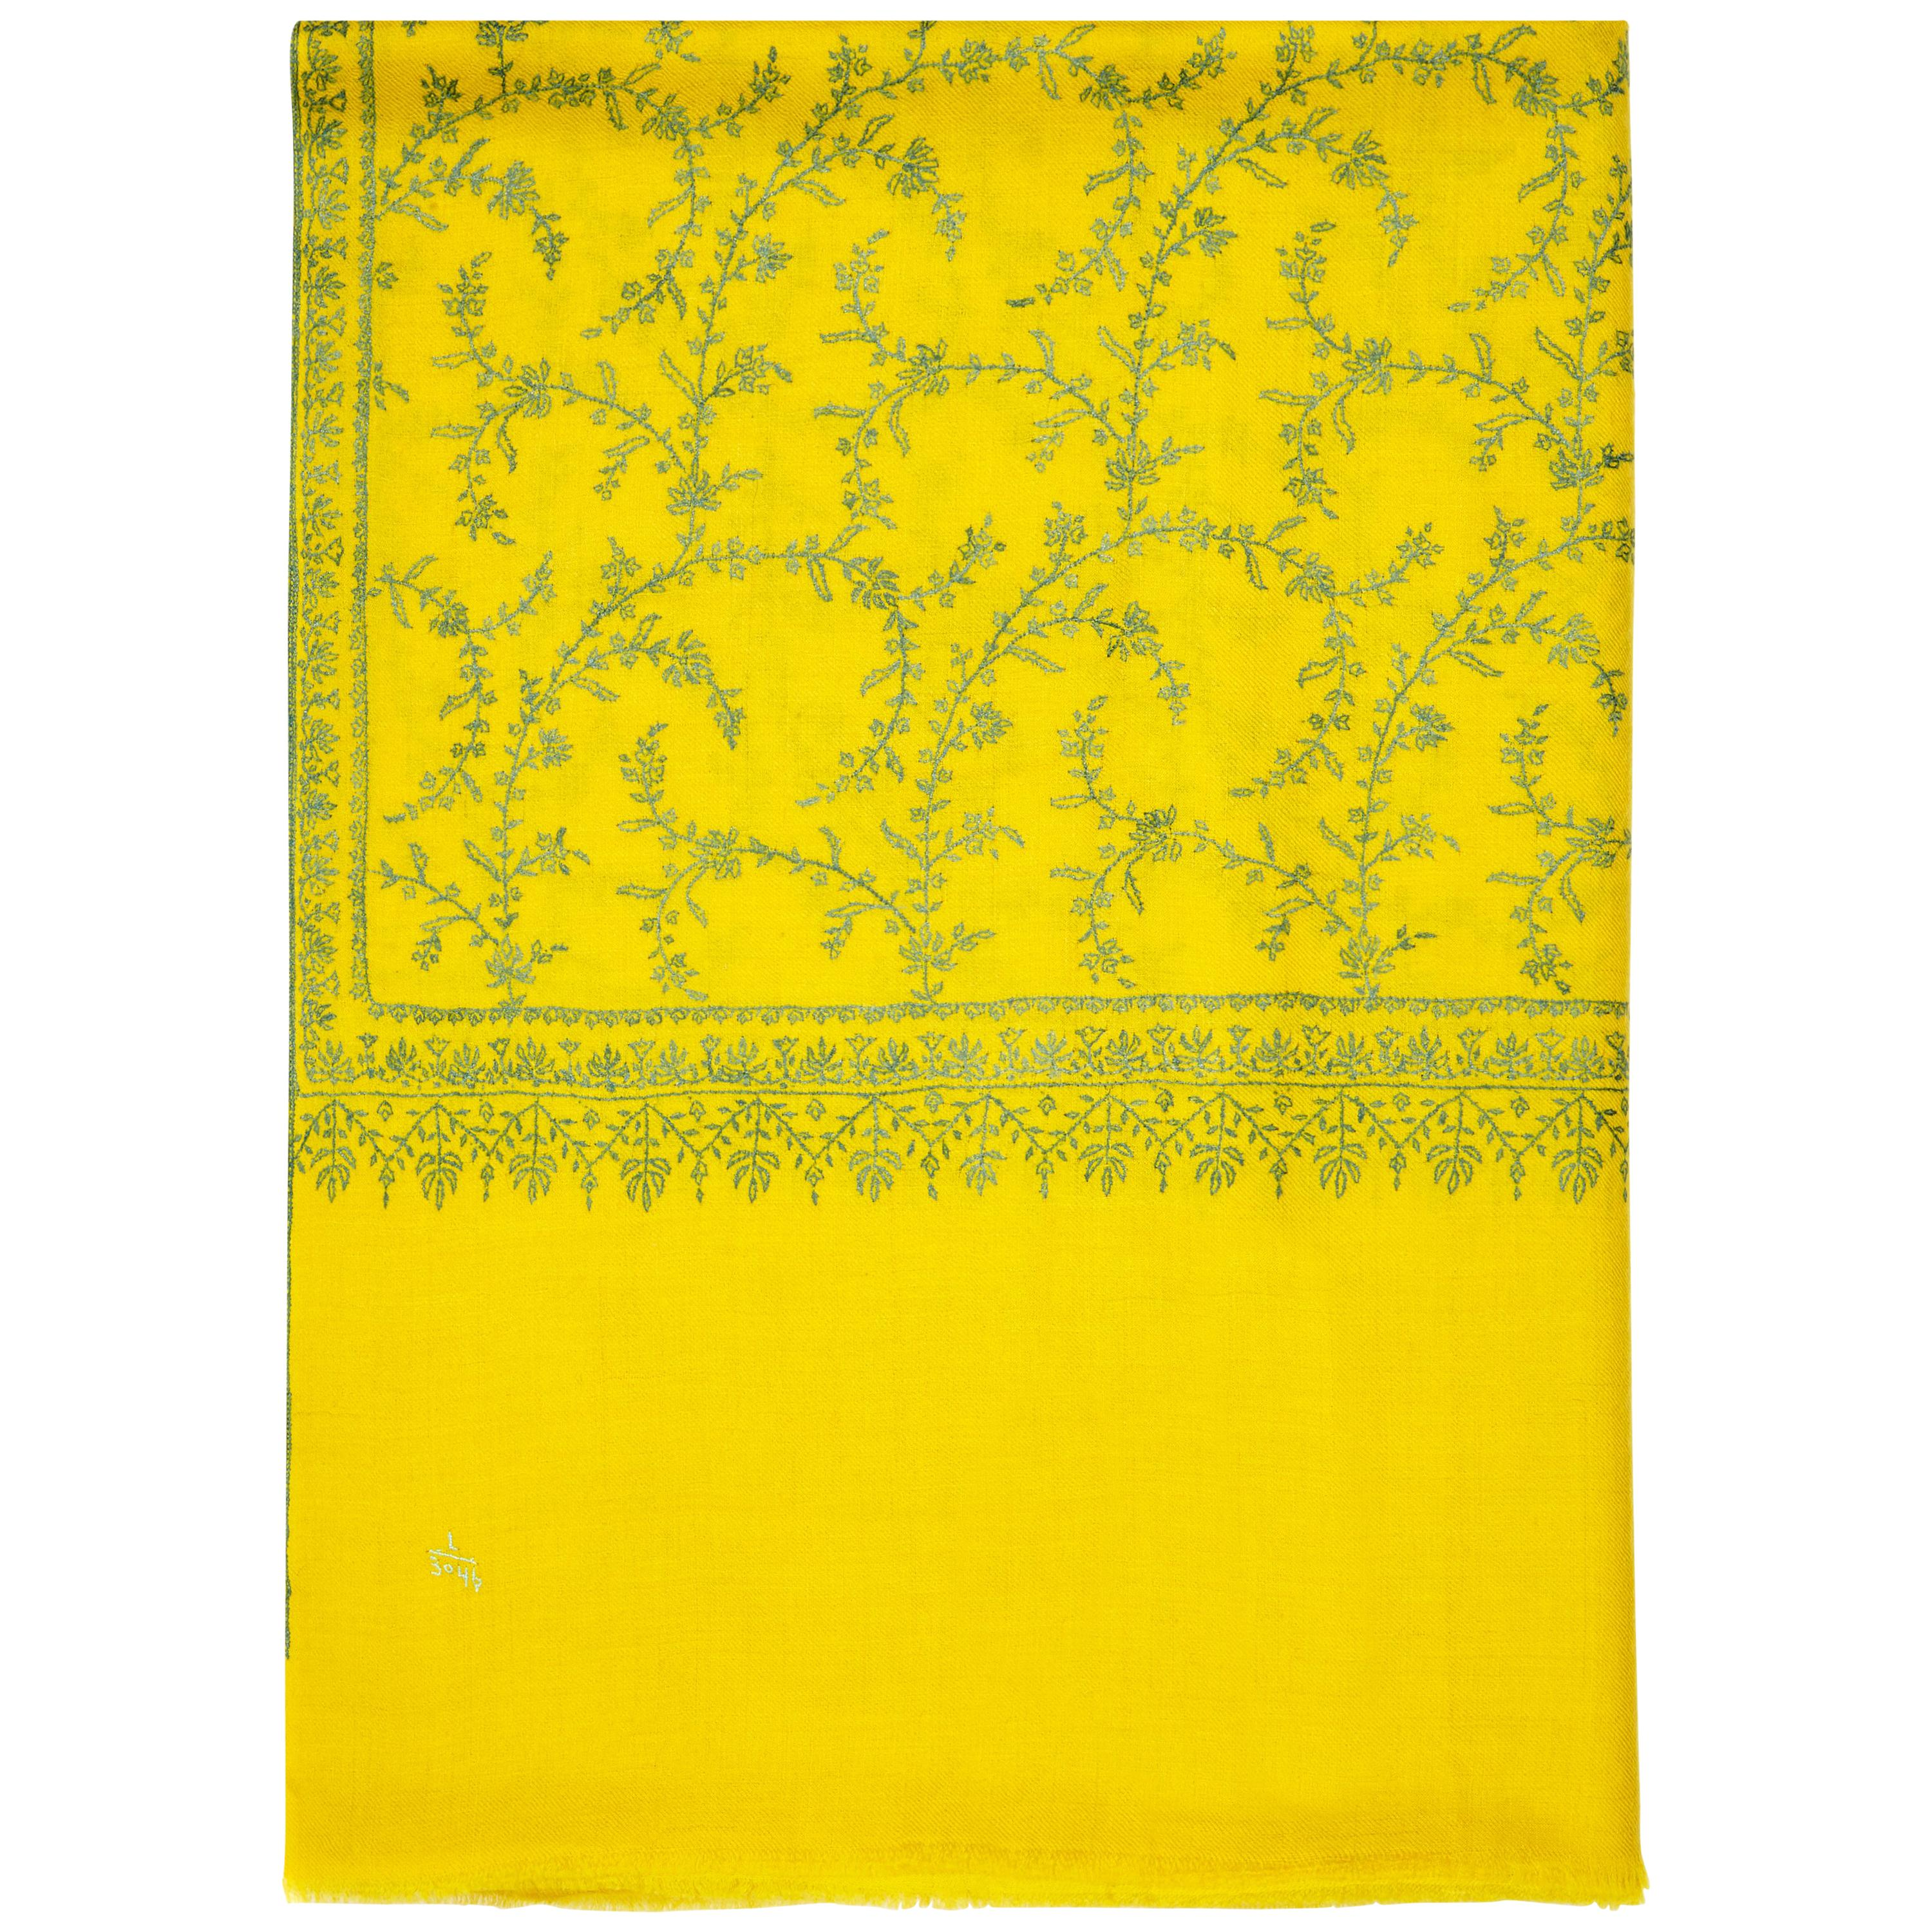 Hand Embroidered 100% Cashmere Scarf in Yellow Made in Kashmir India